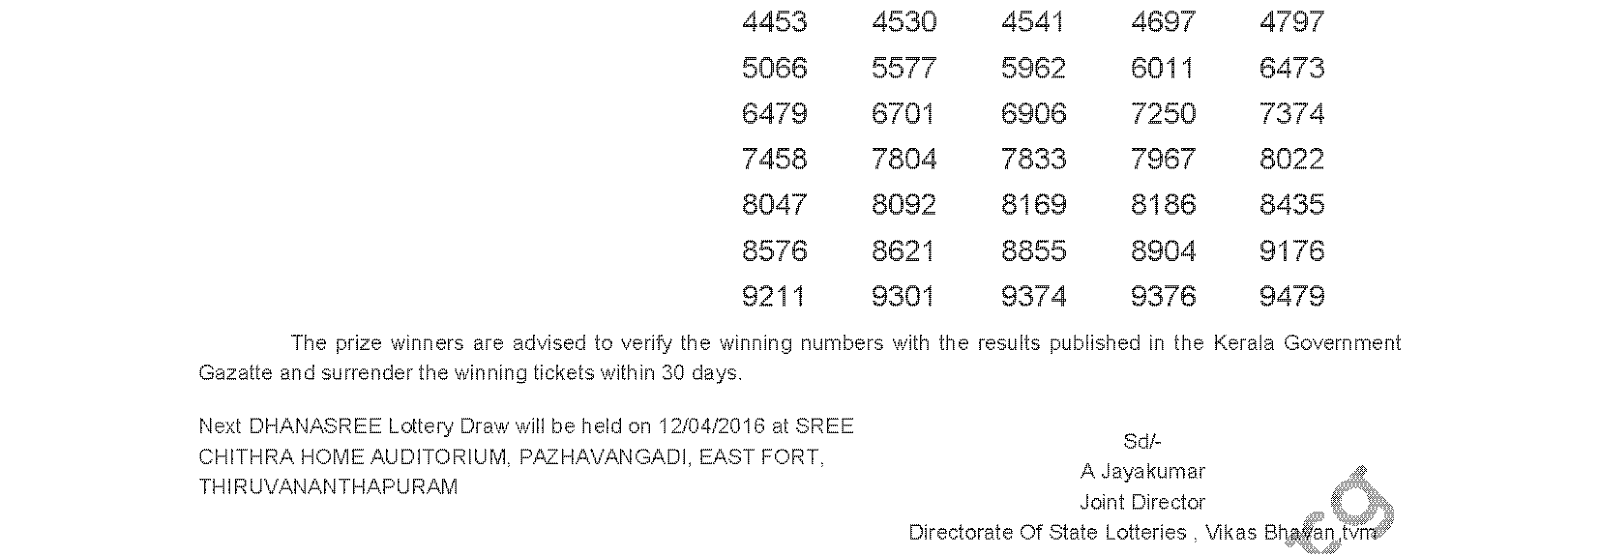 DHANASREE Lottery DS 231 Result 5-4-2016